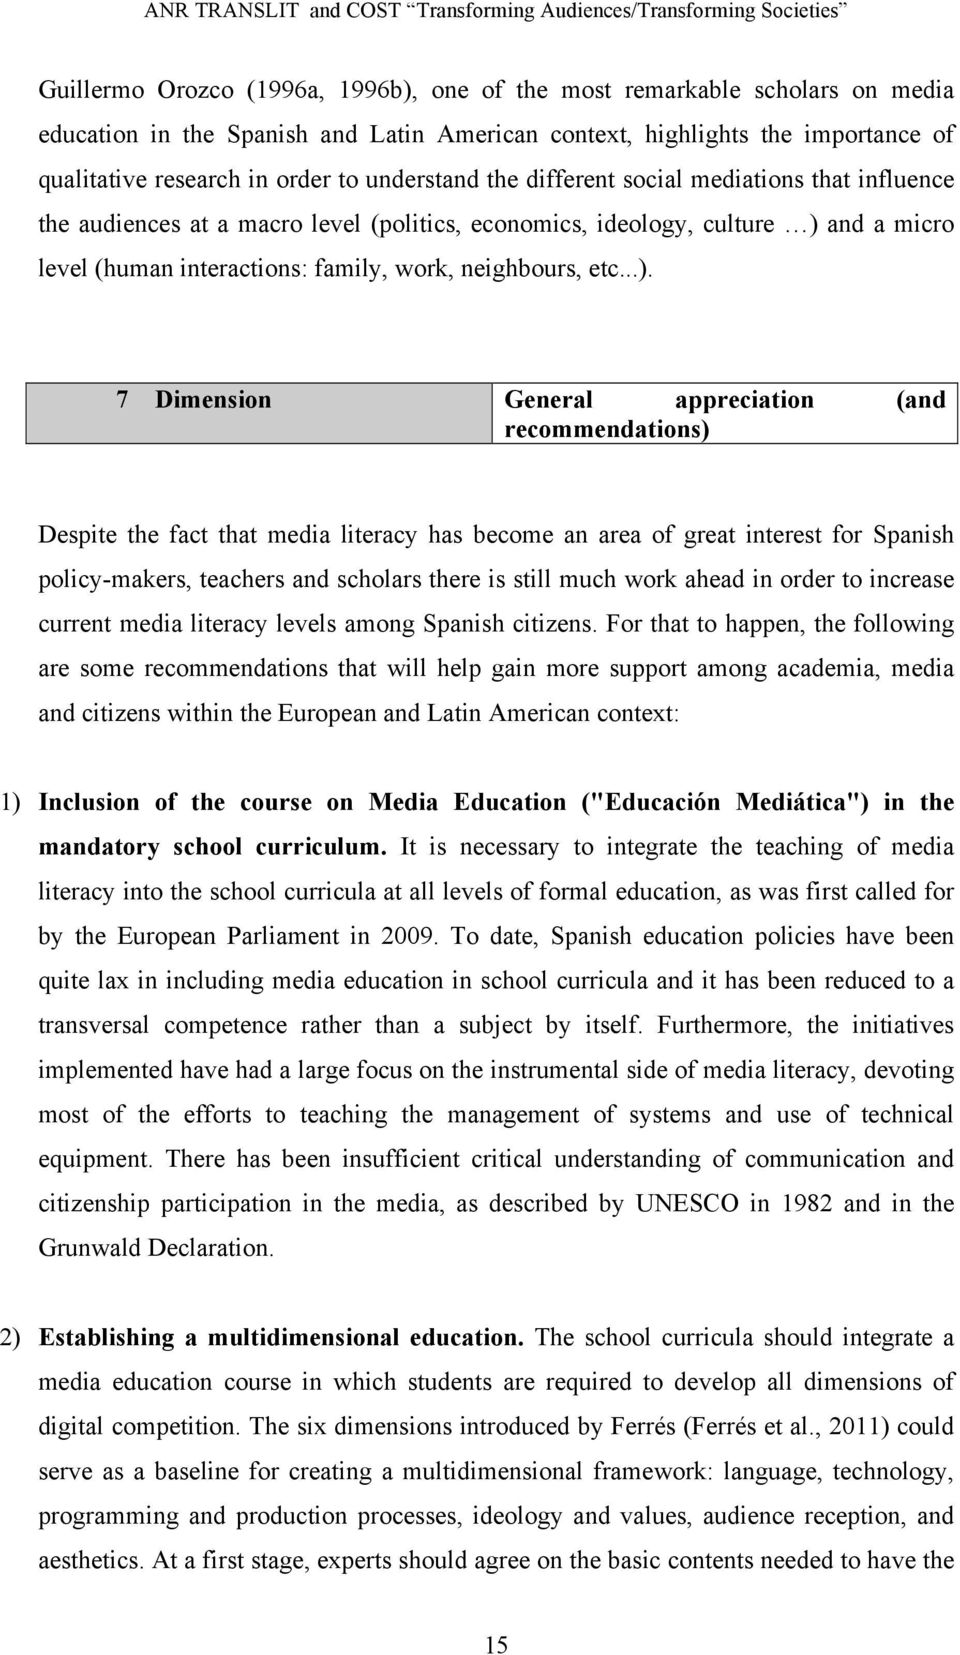 ..). 7 Dimension General appreciation (and recommendations) Despite the fact that media literacy has become an area of great interest for Spanish policy-makers, teachers and scholars there is still